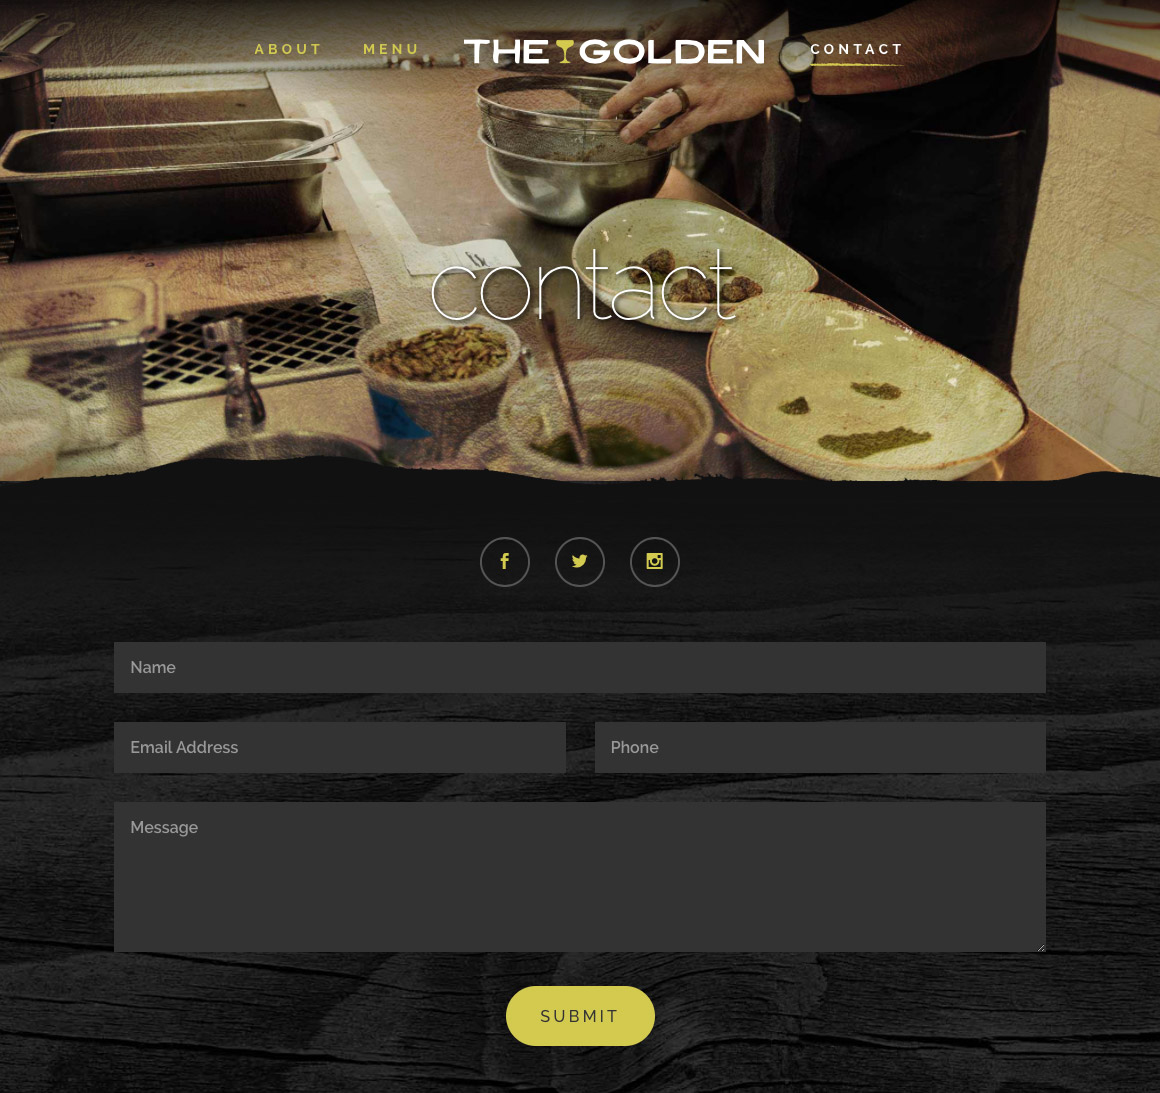 The Golden: website contact page